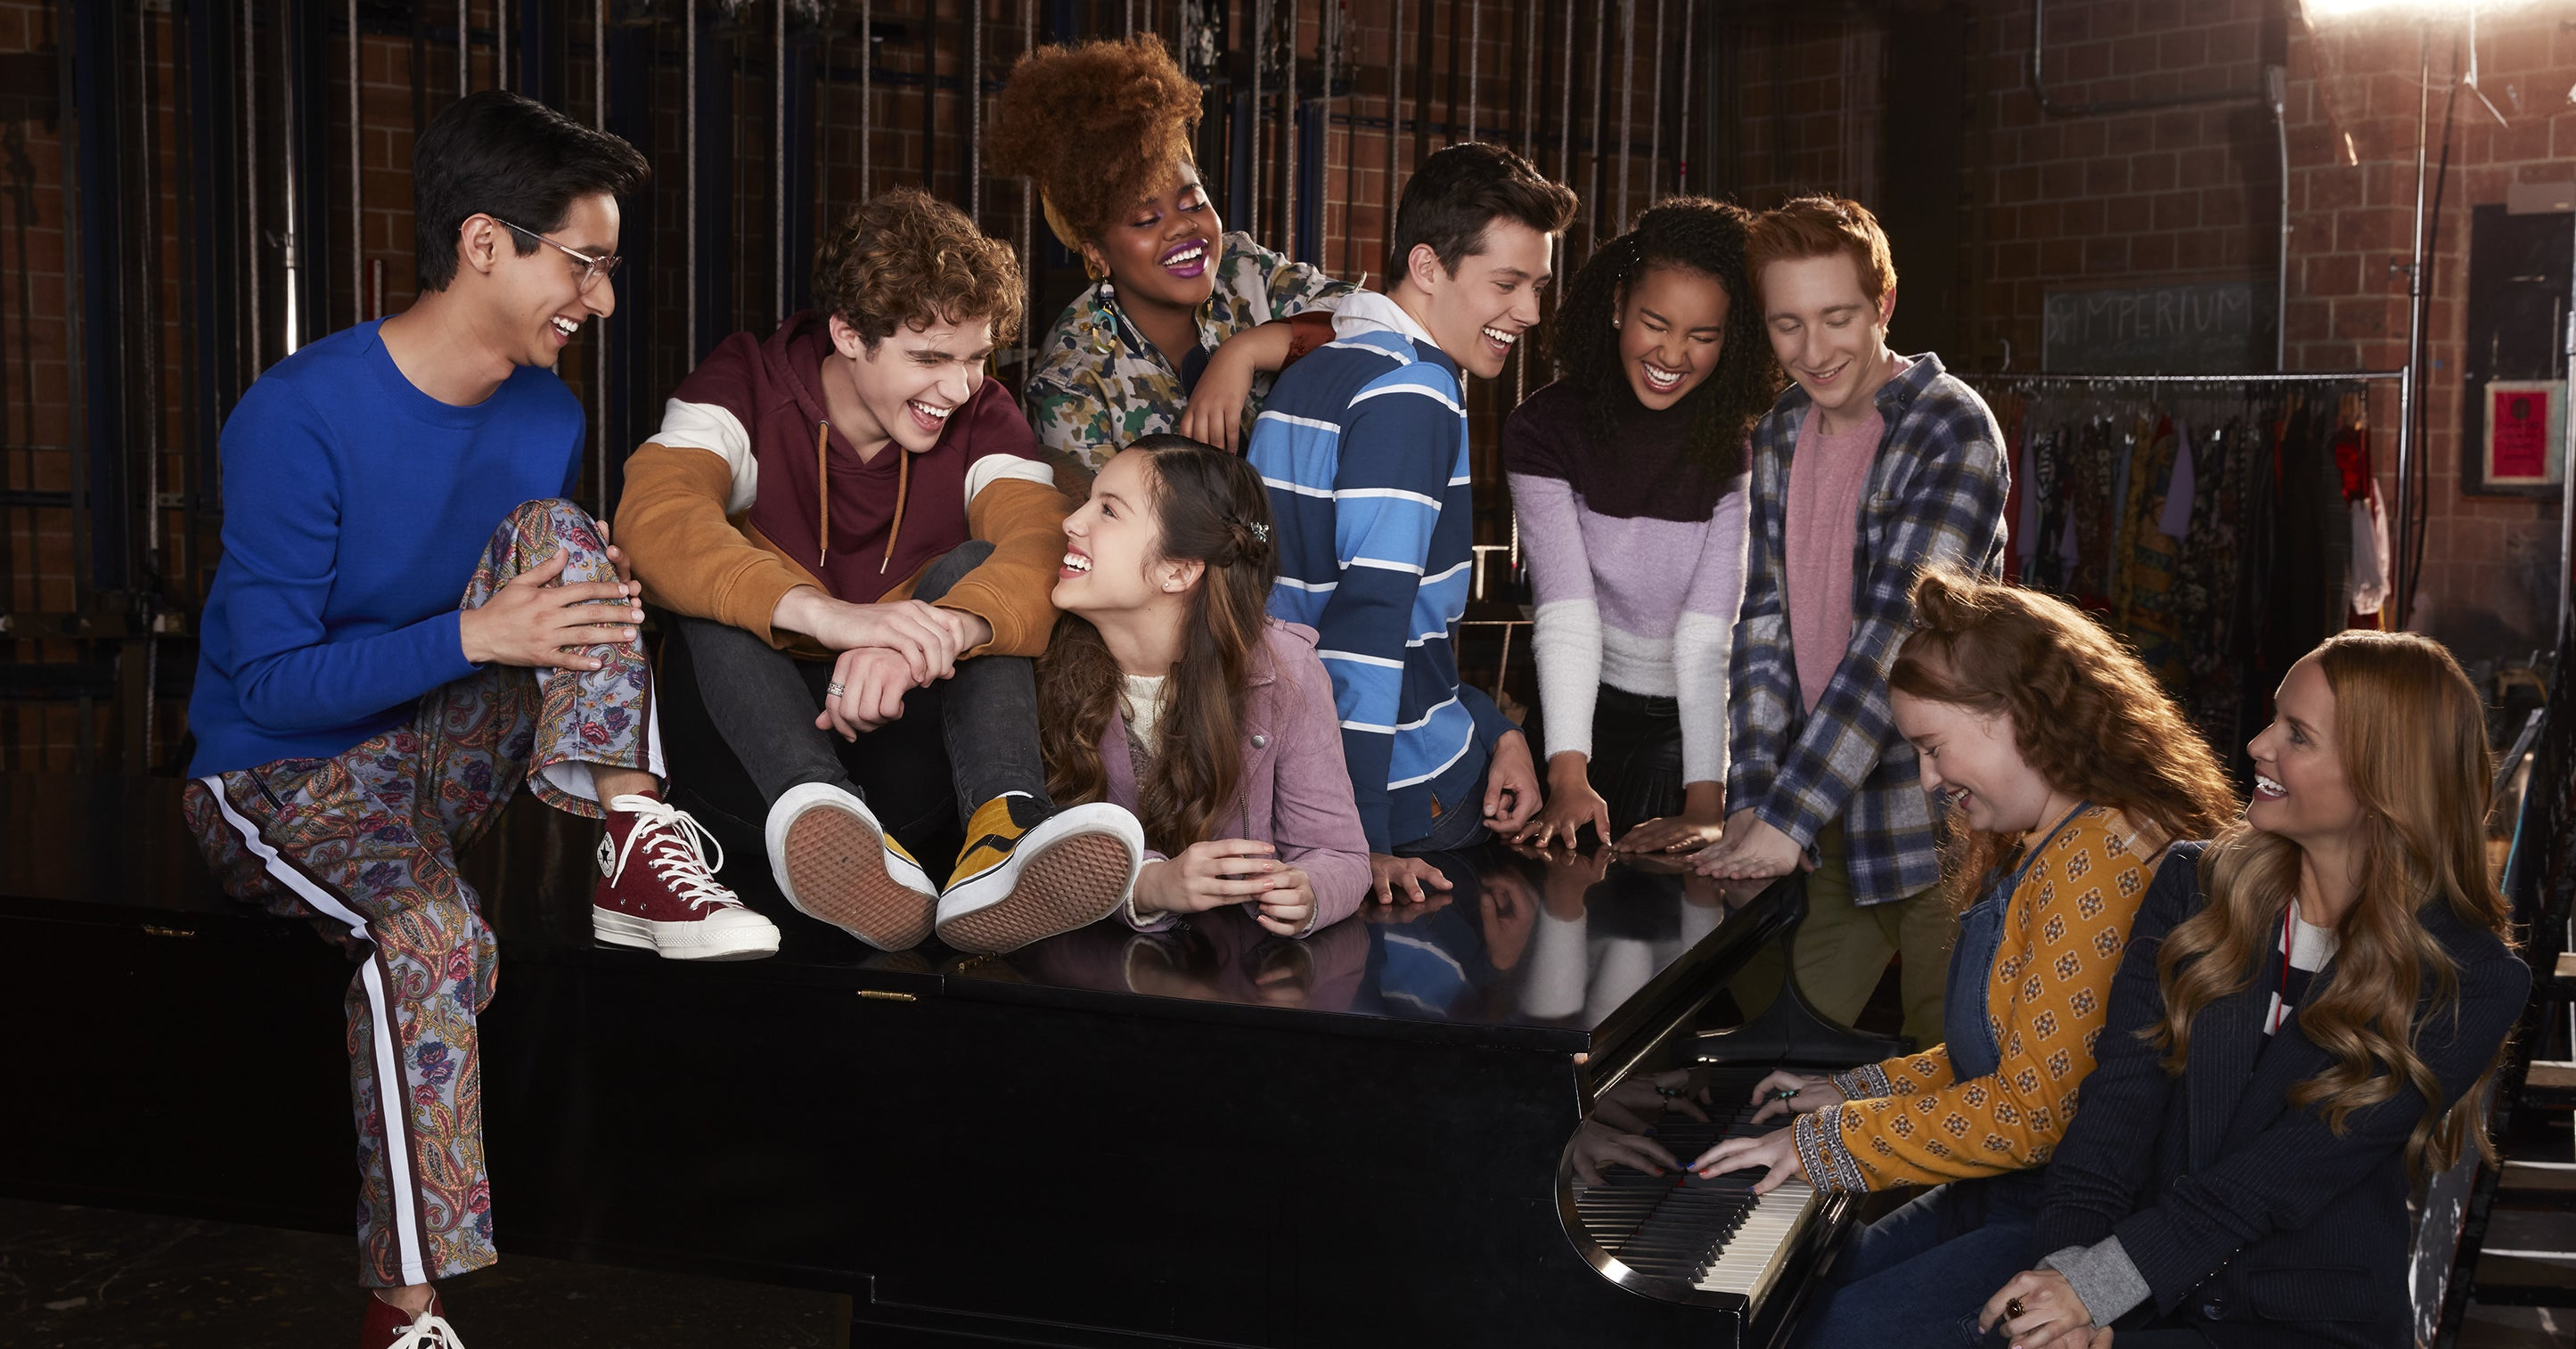 https://fiftyshadesofgay.co.in/LGBTQ+ TV Shows/This High School Musical Fan's Story is Why We Need LGBT+ Representation